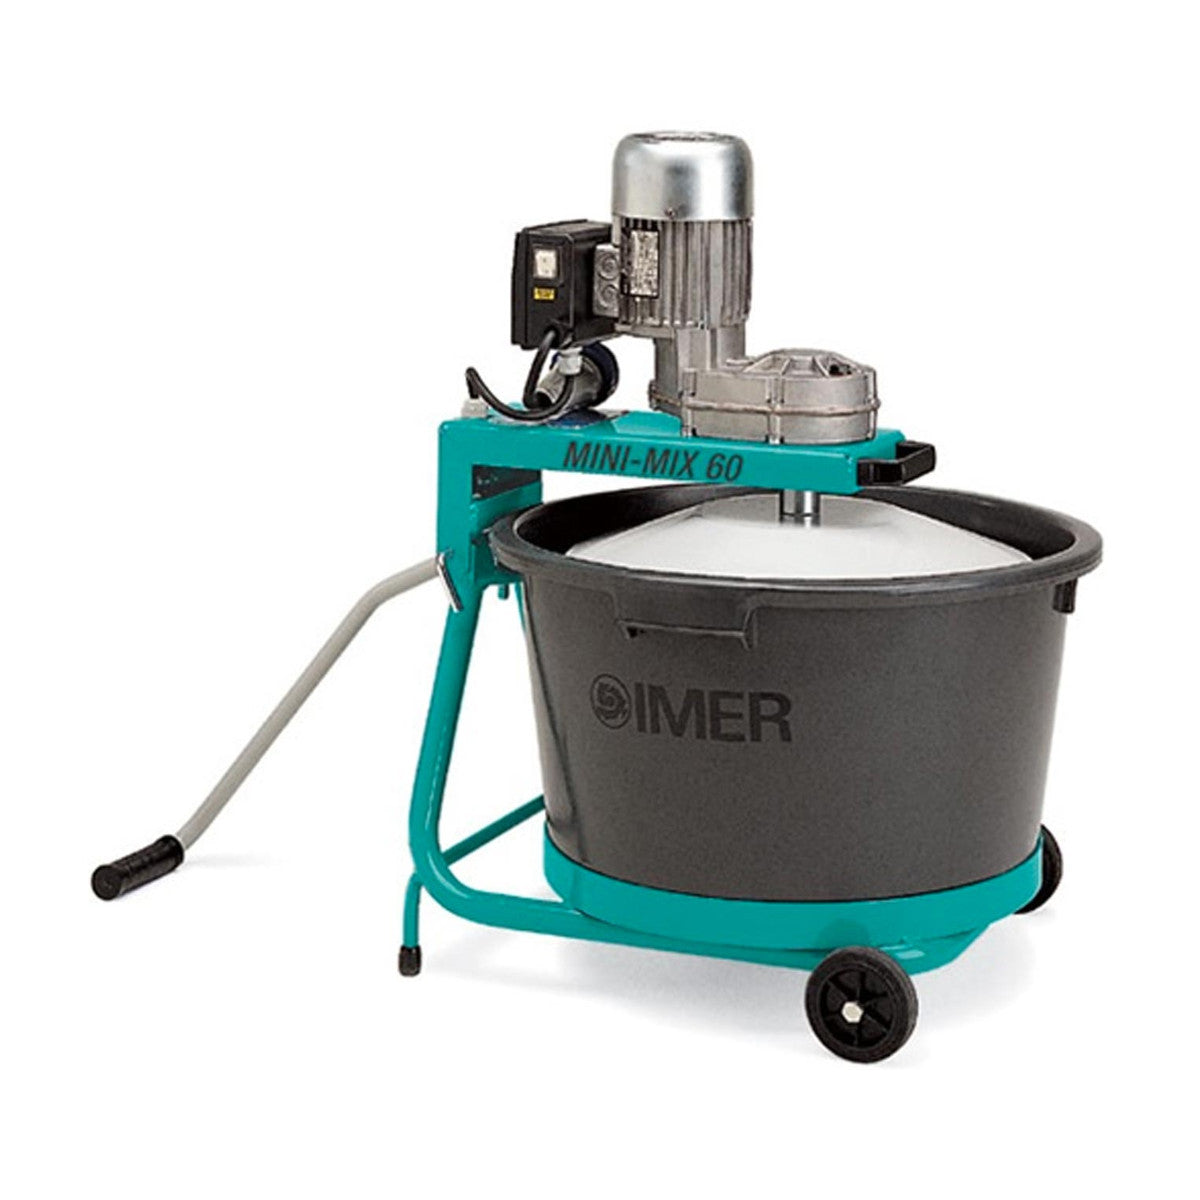 Imer Mini Mix 60 Portable Mortar Mixer